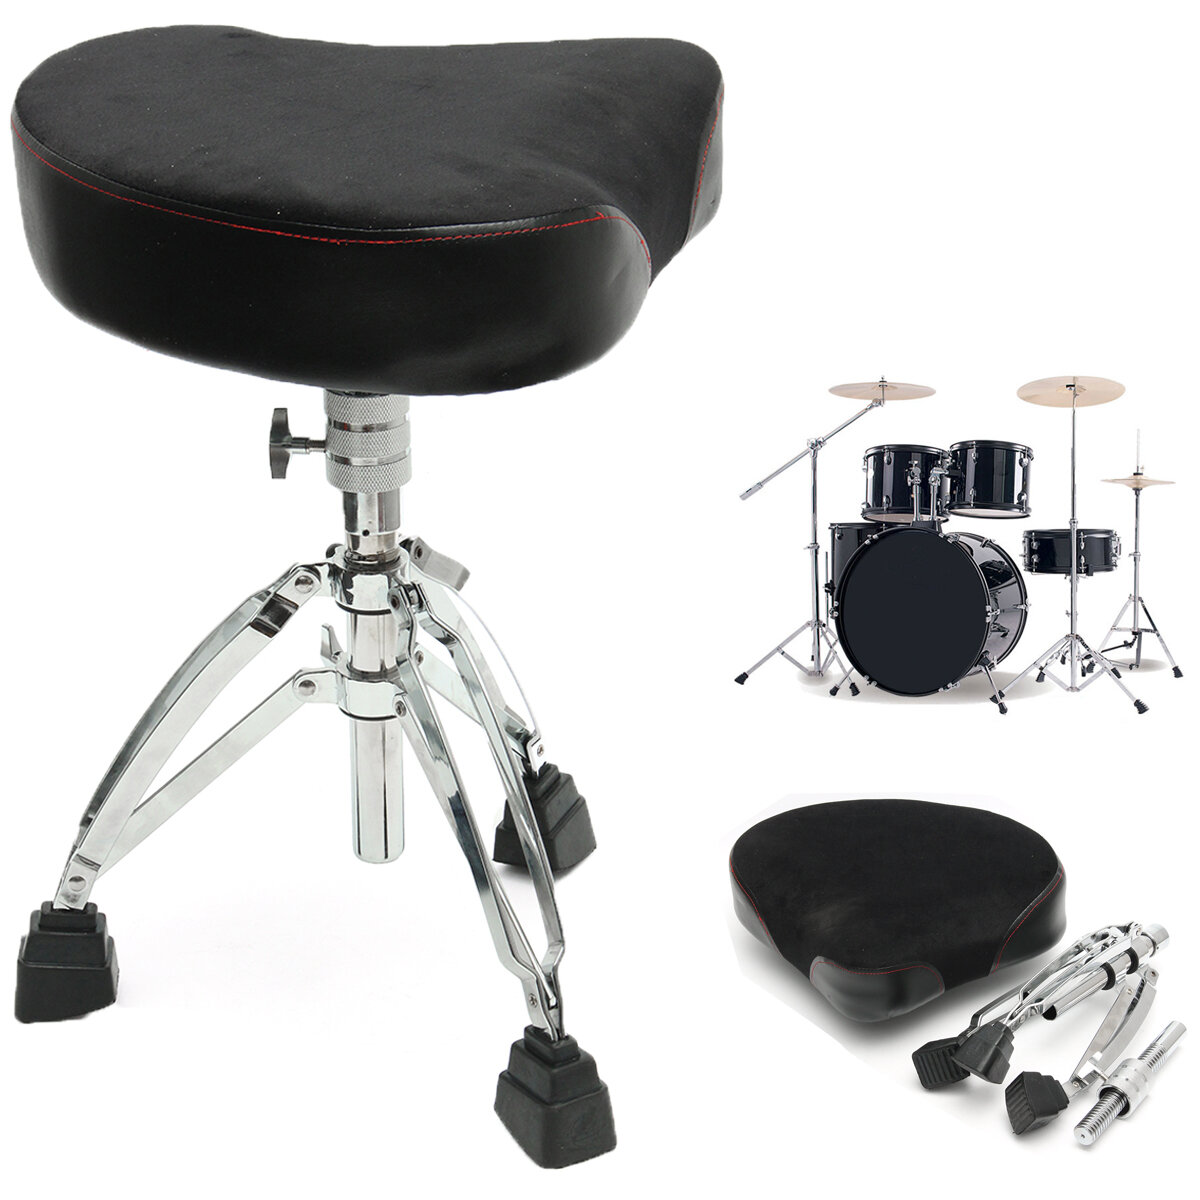 Yinyoute Z-220 Leather Suede Threaded Rod Drum Stool for Drummer